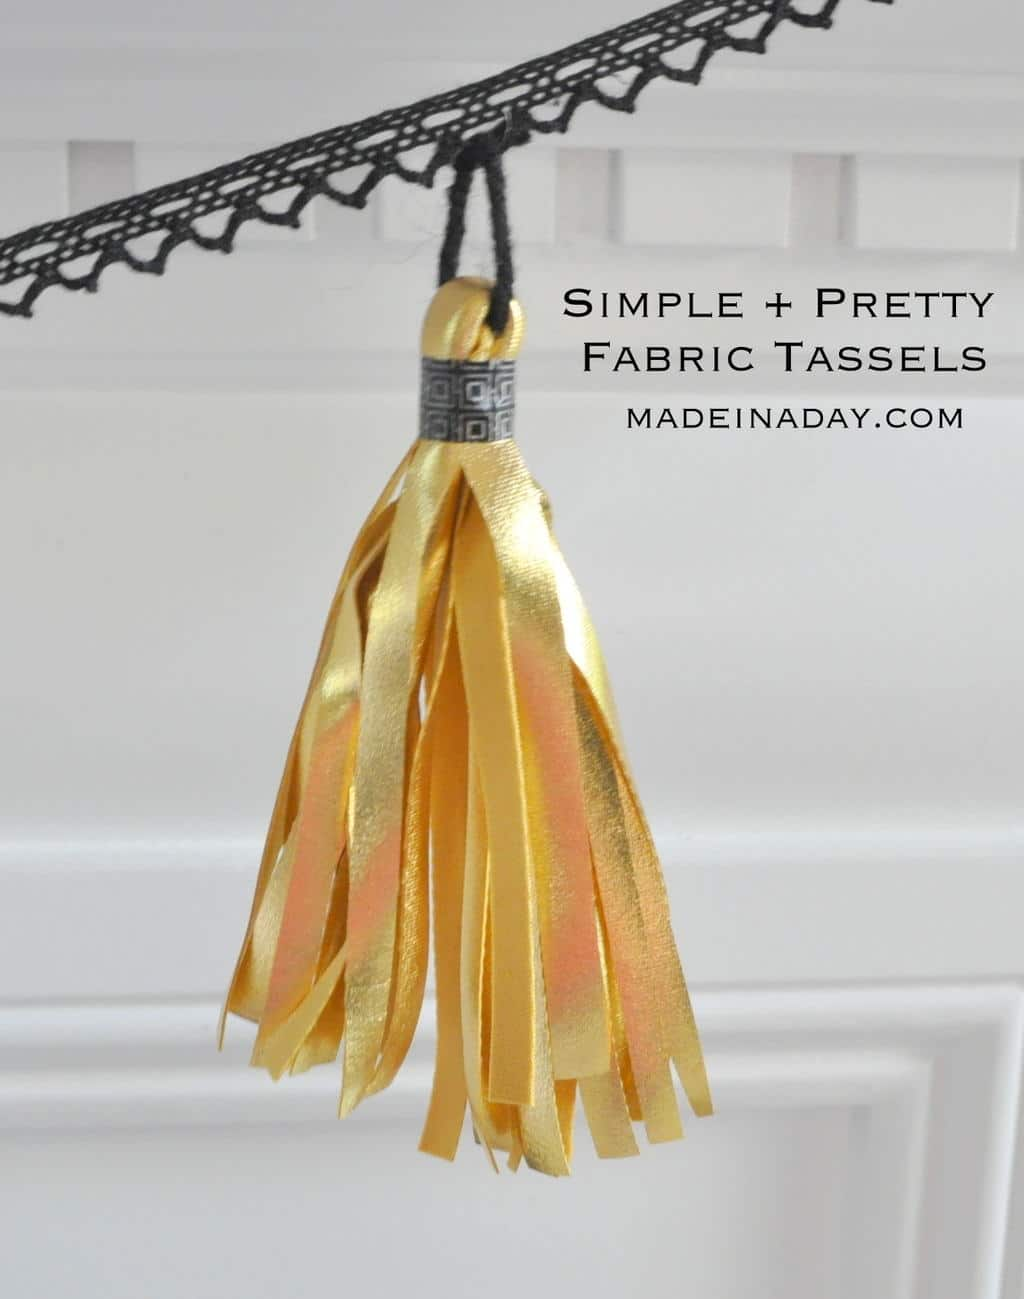 Simple Fabric Tassels